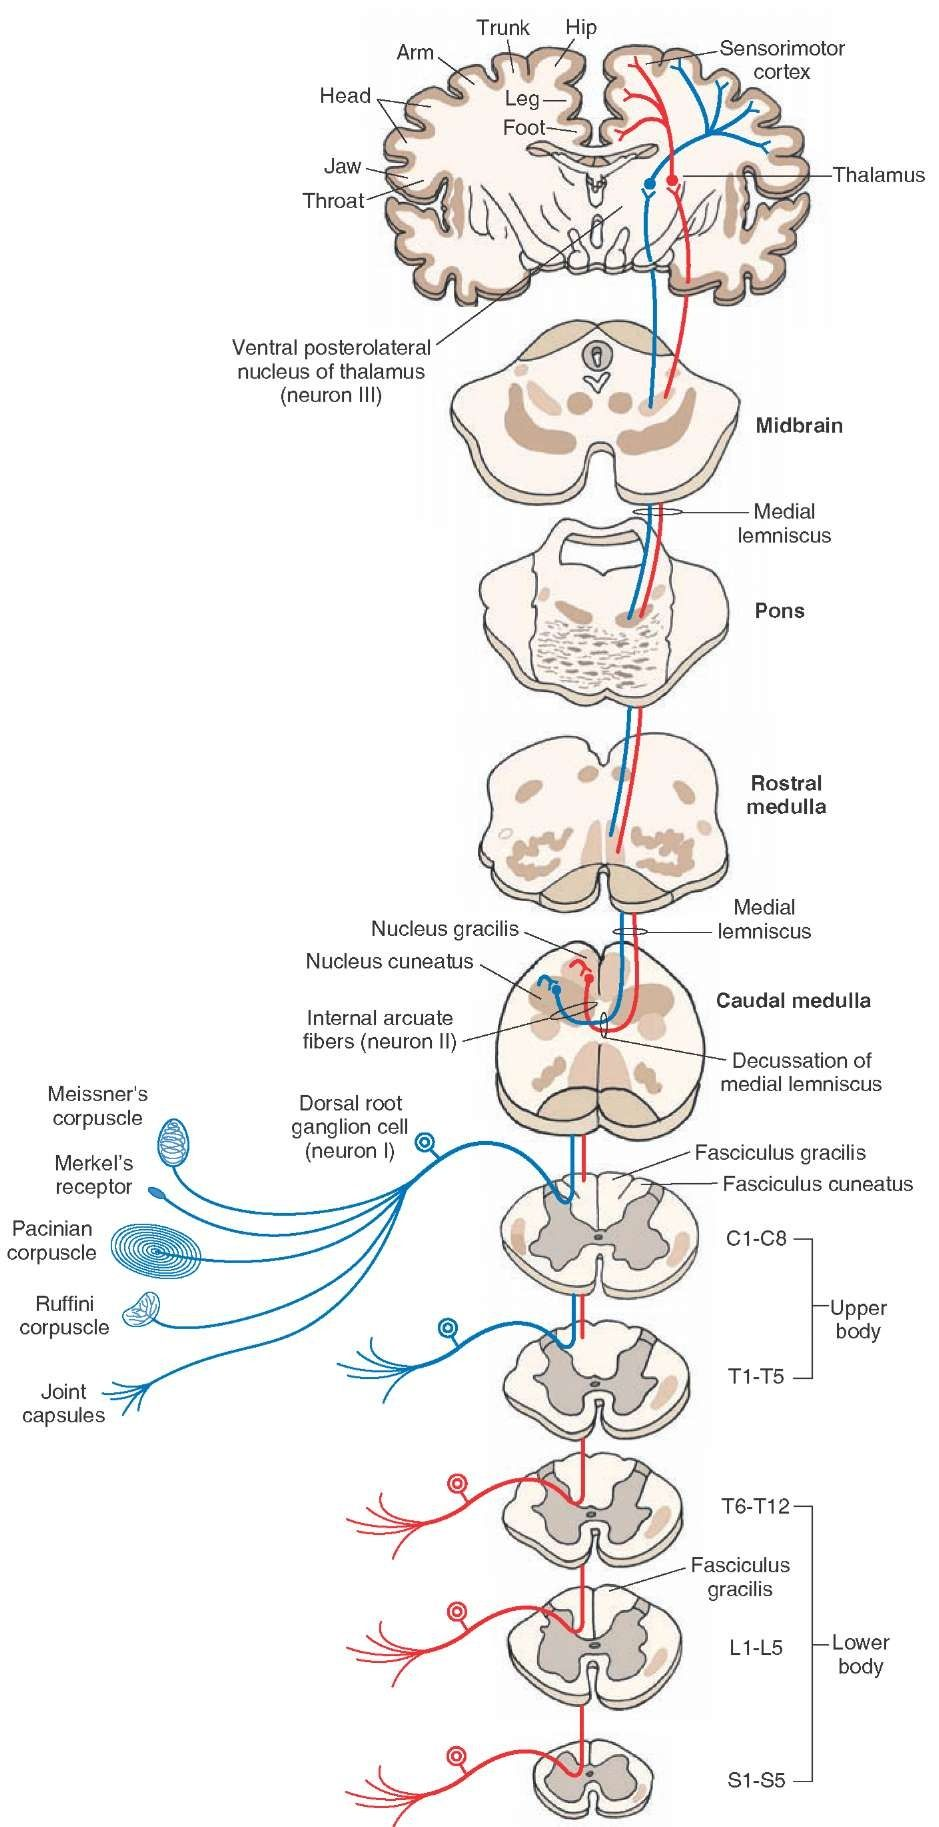 small resolution of diagram showing the course of fibers in the dorsal column the fasciculus gracilis exists at all levels of the spinal cord and contains long ascending